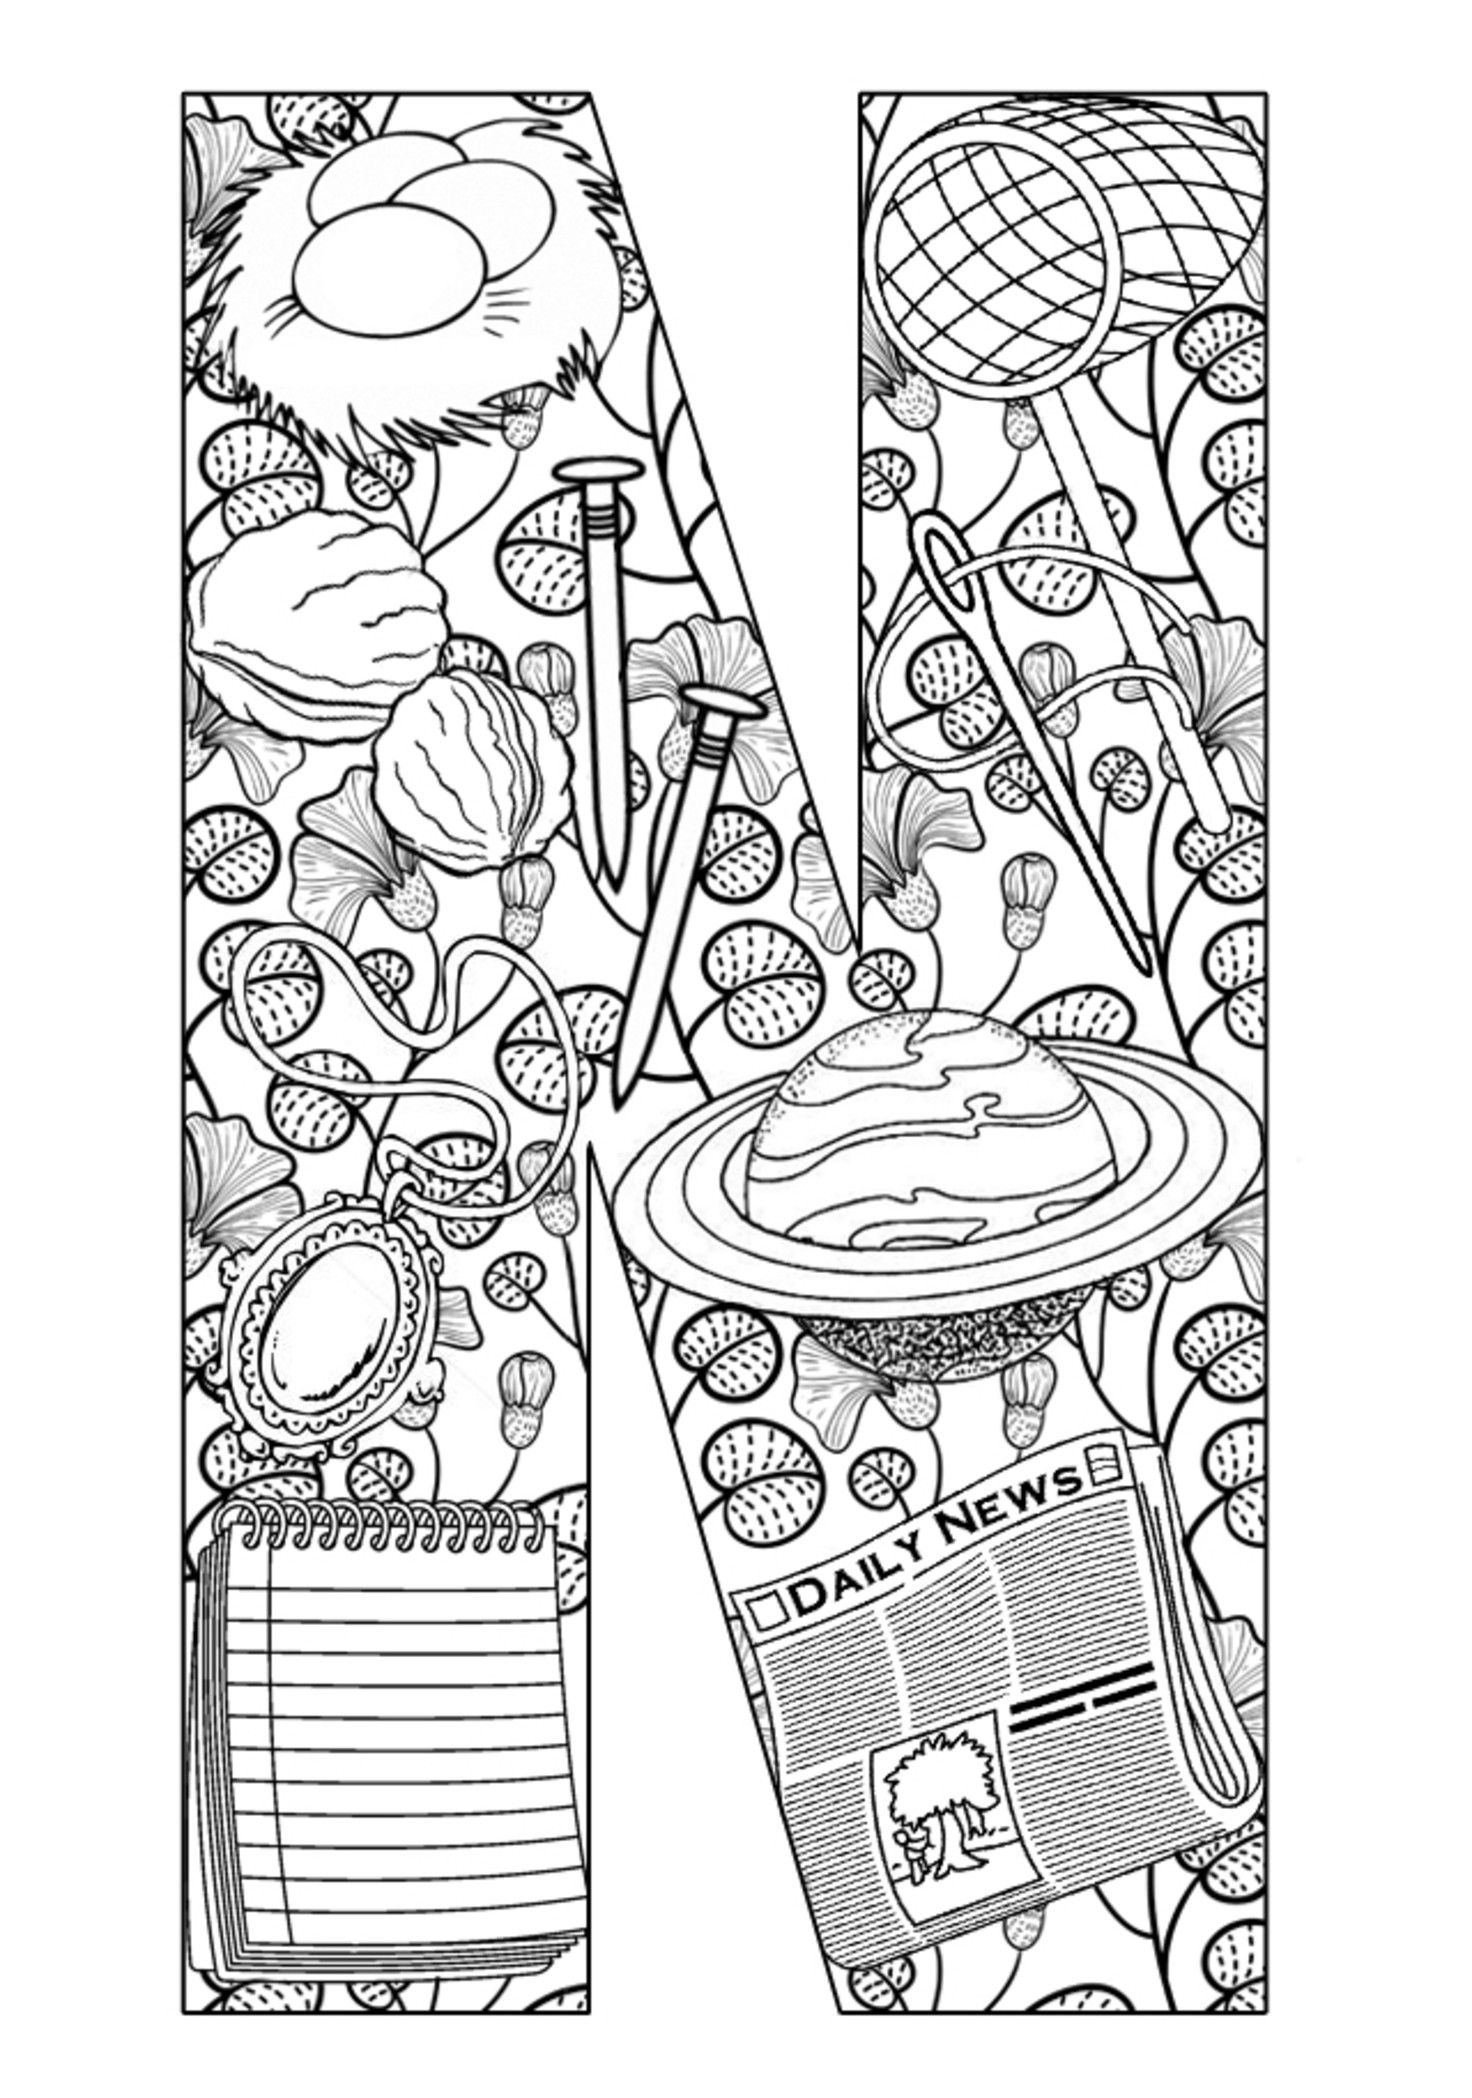 letter n coloring pages for adults letter n coloring book for adults vector stock vector pages for adults n letter coloring